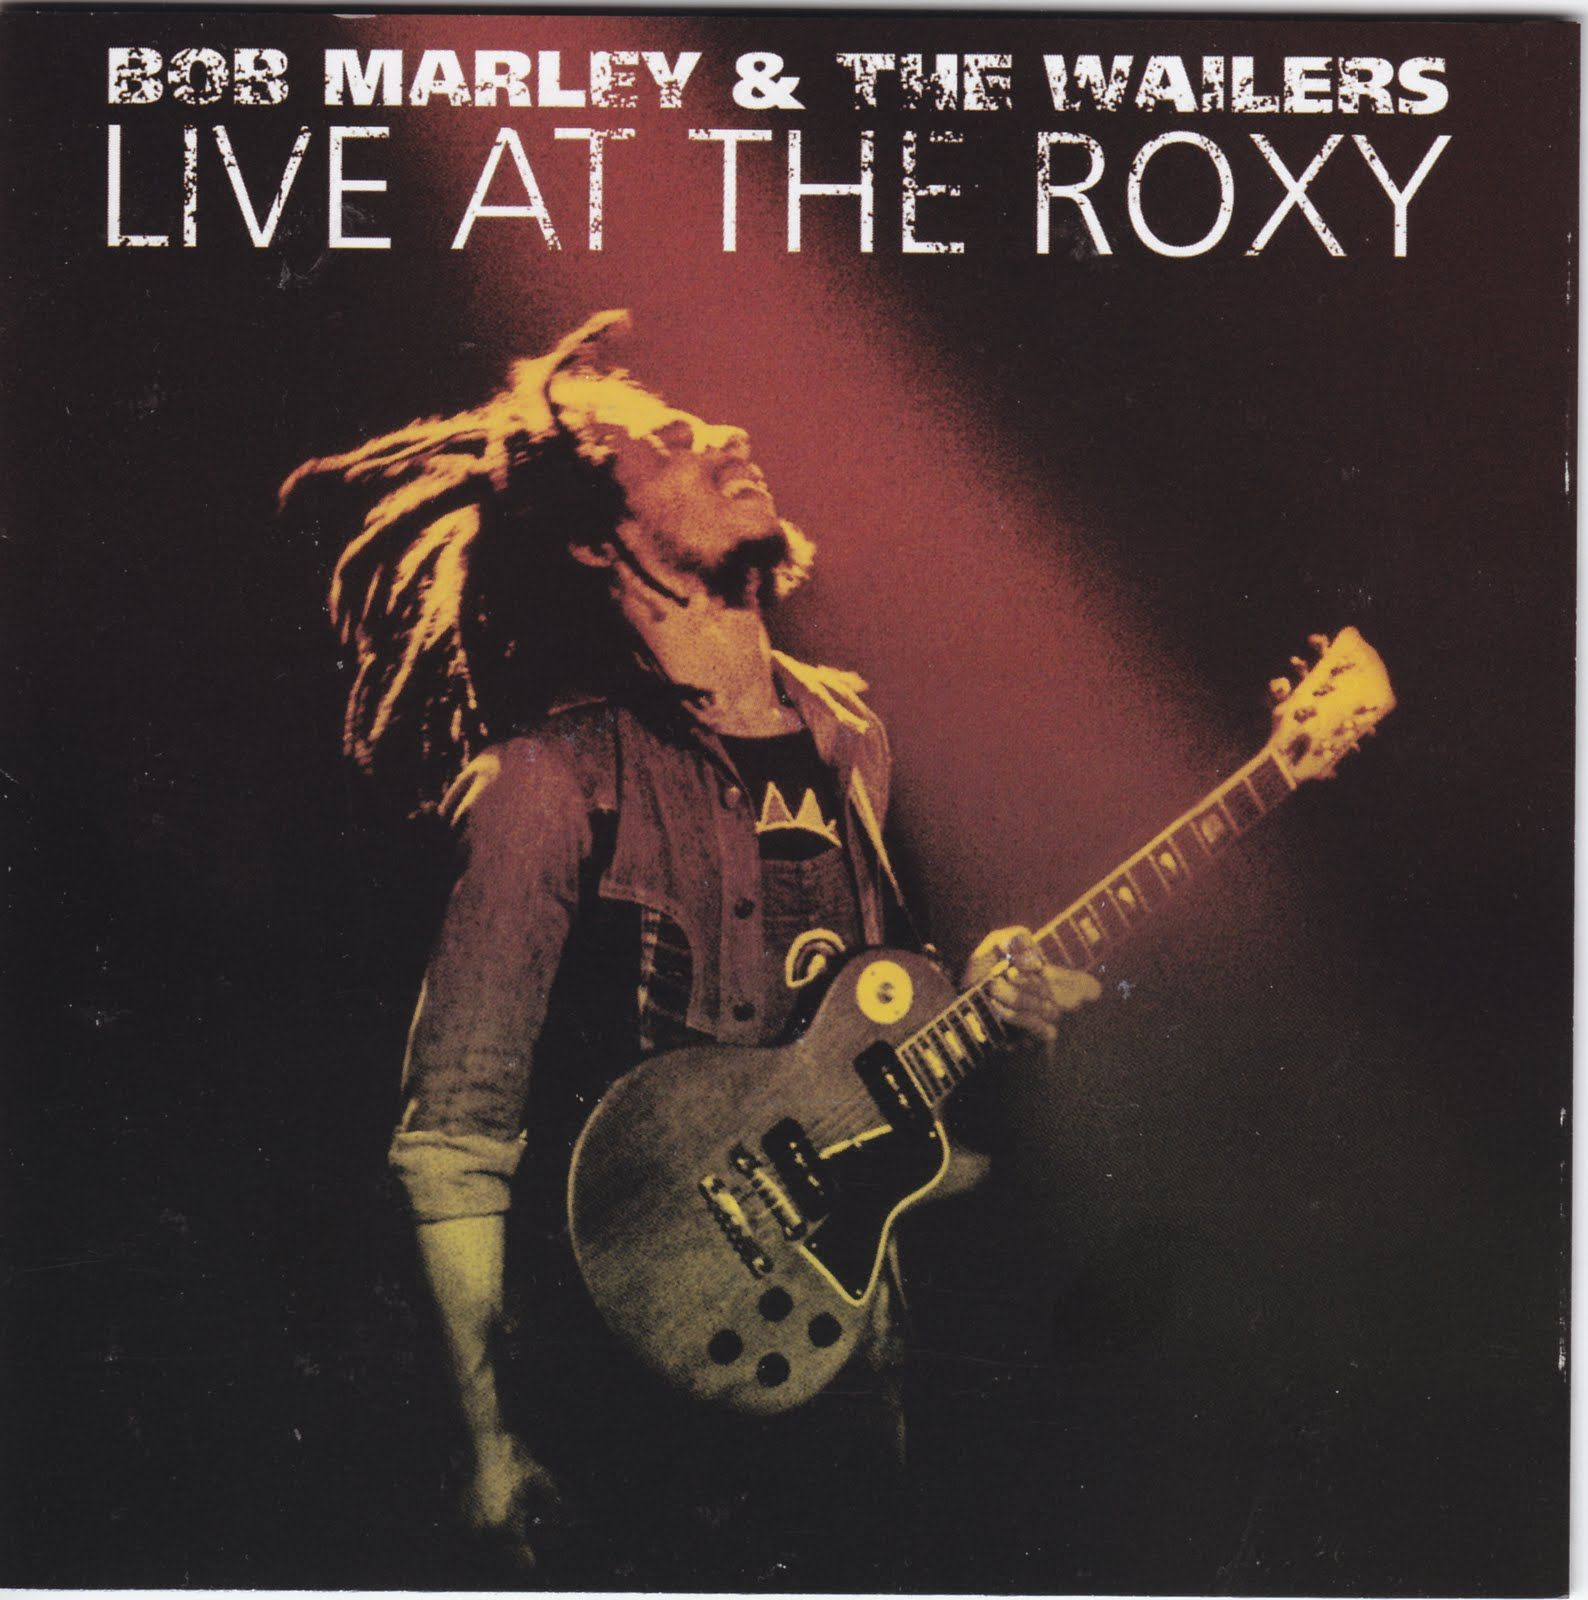 Bob Marley and the Wailers: Live at the Roxy. My all time favorite Marley album. The energy and song line up are the best. Bob was electric.